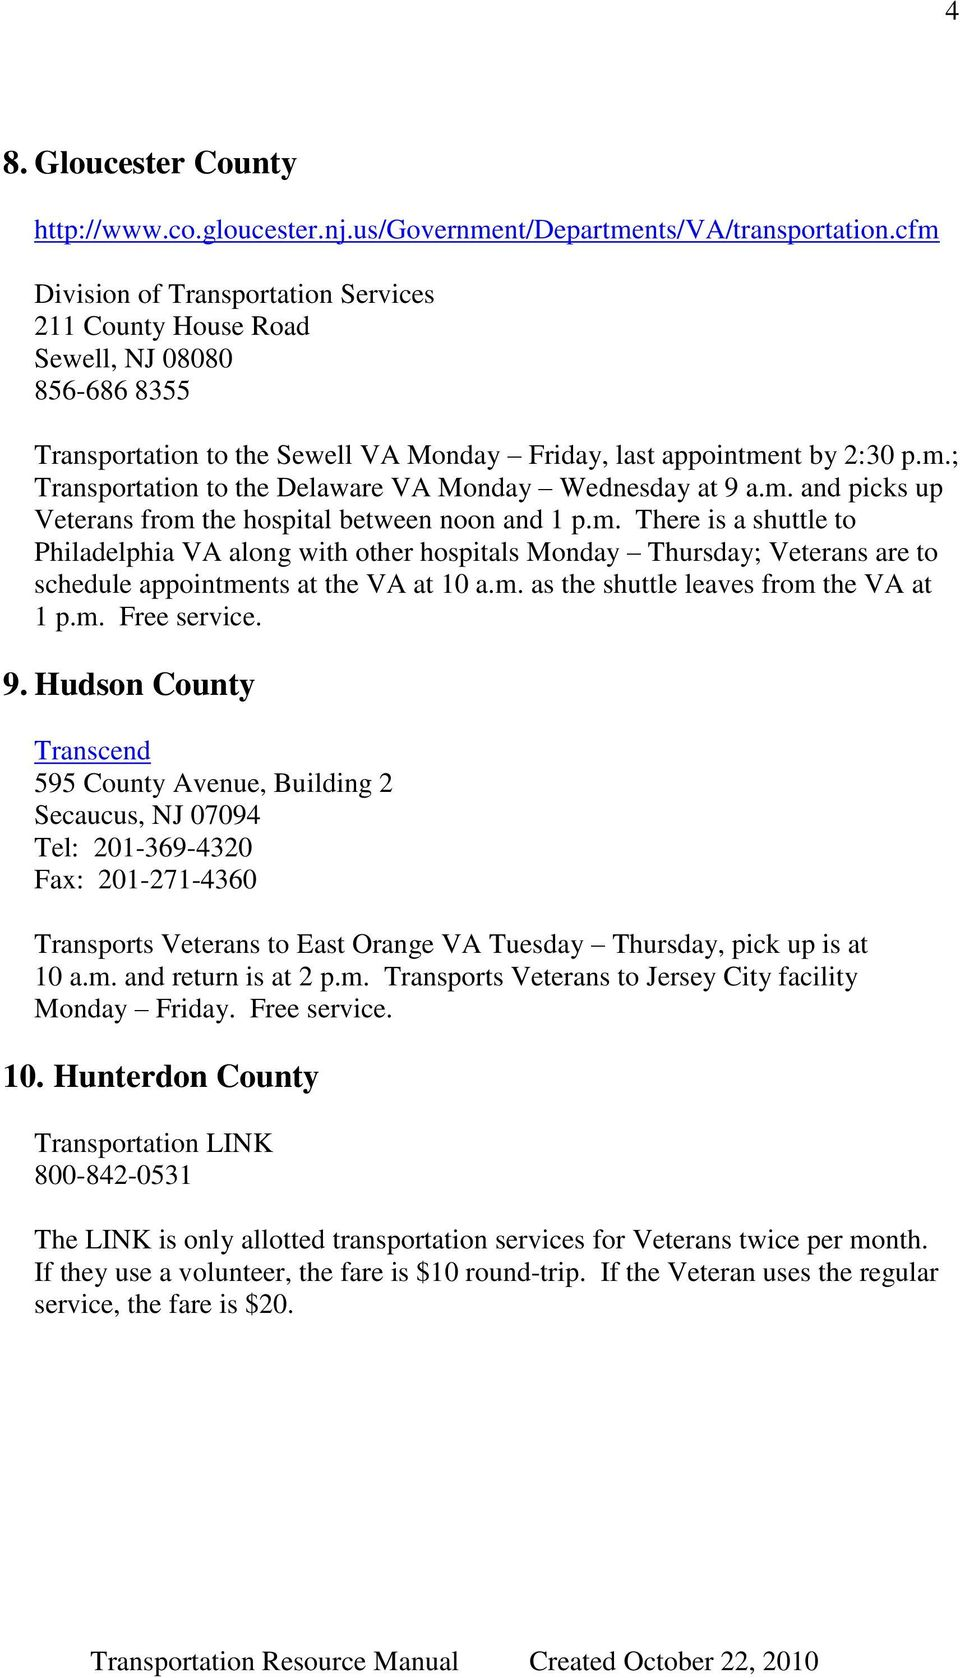 m. and picks up Veterans from the hospital between noon and 1 p.m. There is a shuttle to Philadelphia VA along with other hospitals Monday Thursday; Veterans are to schedule appointments at the VA at 10 a.